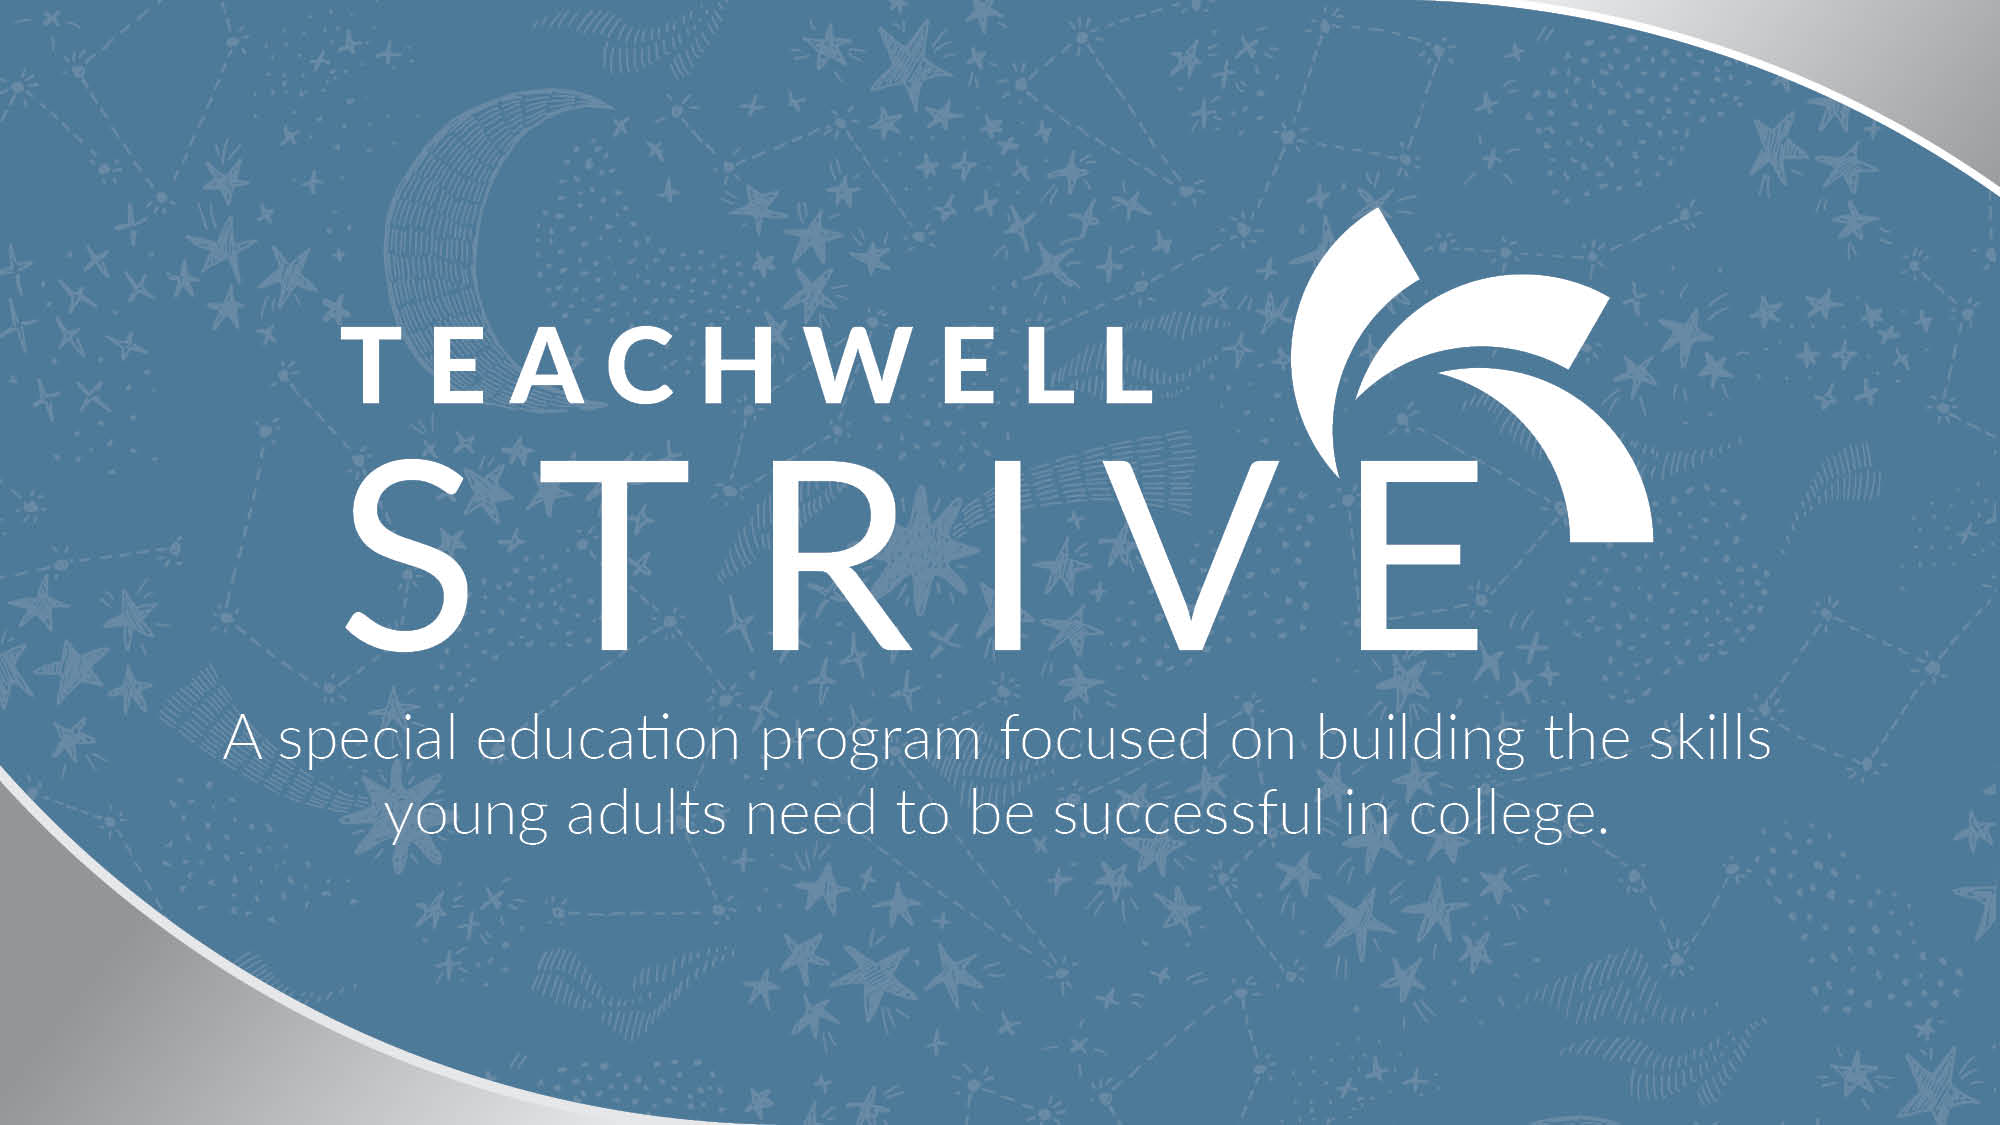 Teachwell Strive.jpg